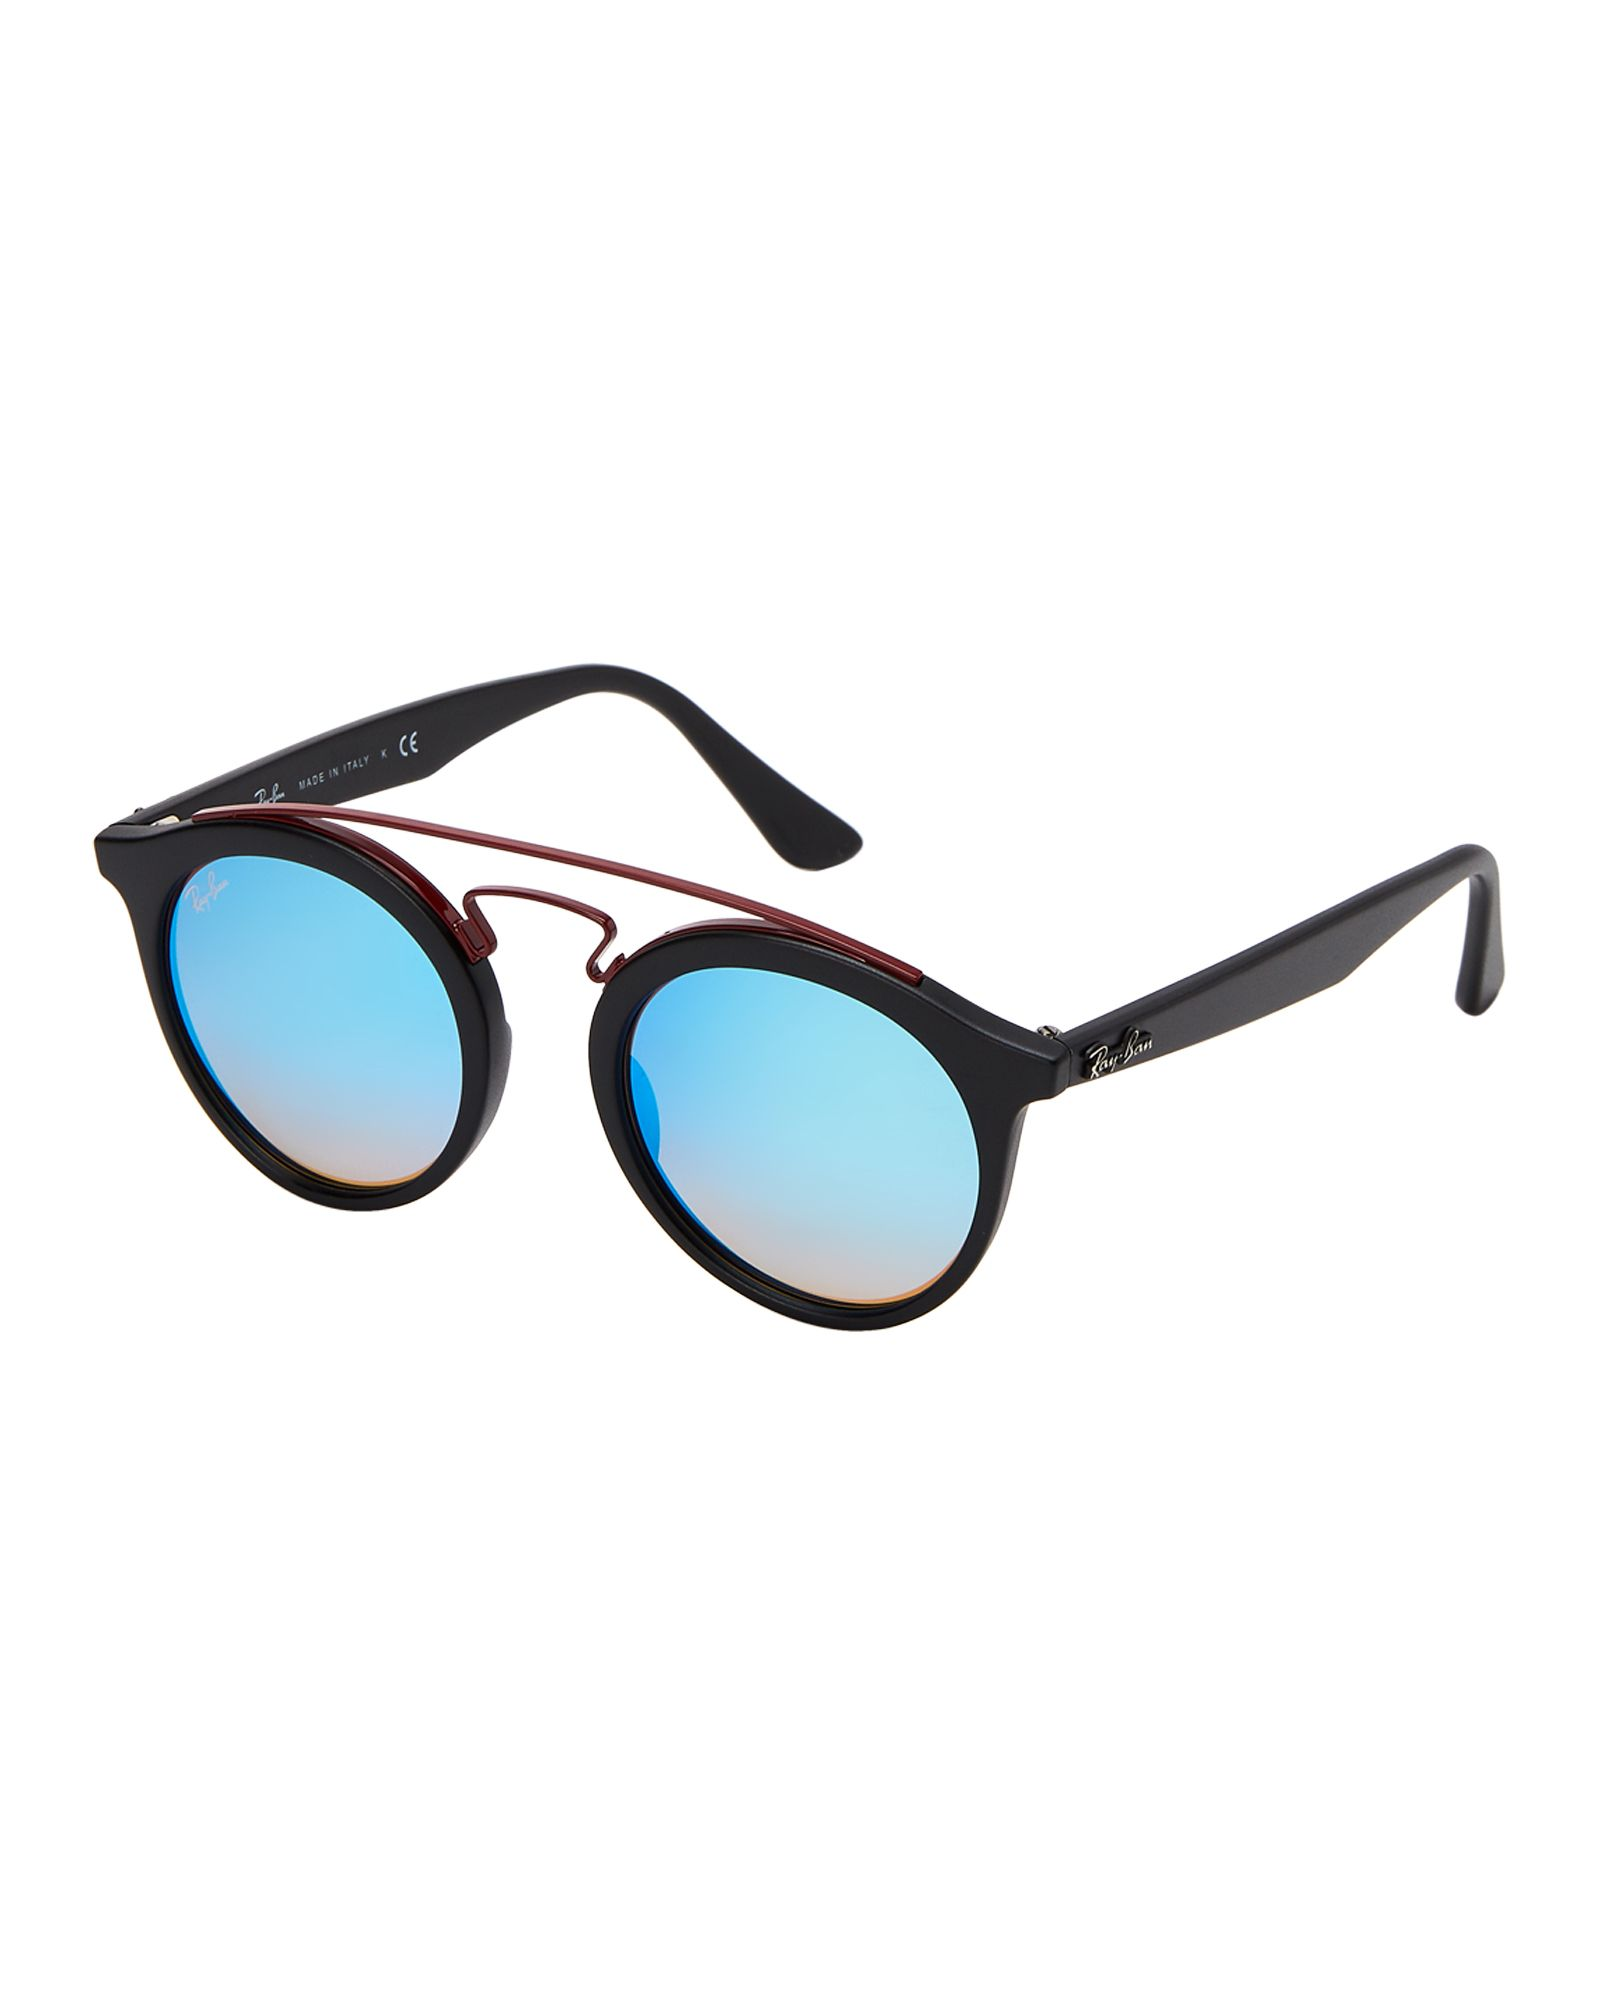 976c879335b Ray-Ban RB 4256 Matte Black   Blue Retro Round Sunglasses